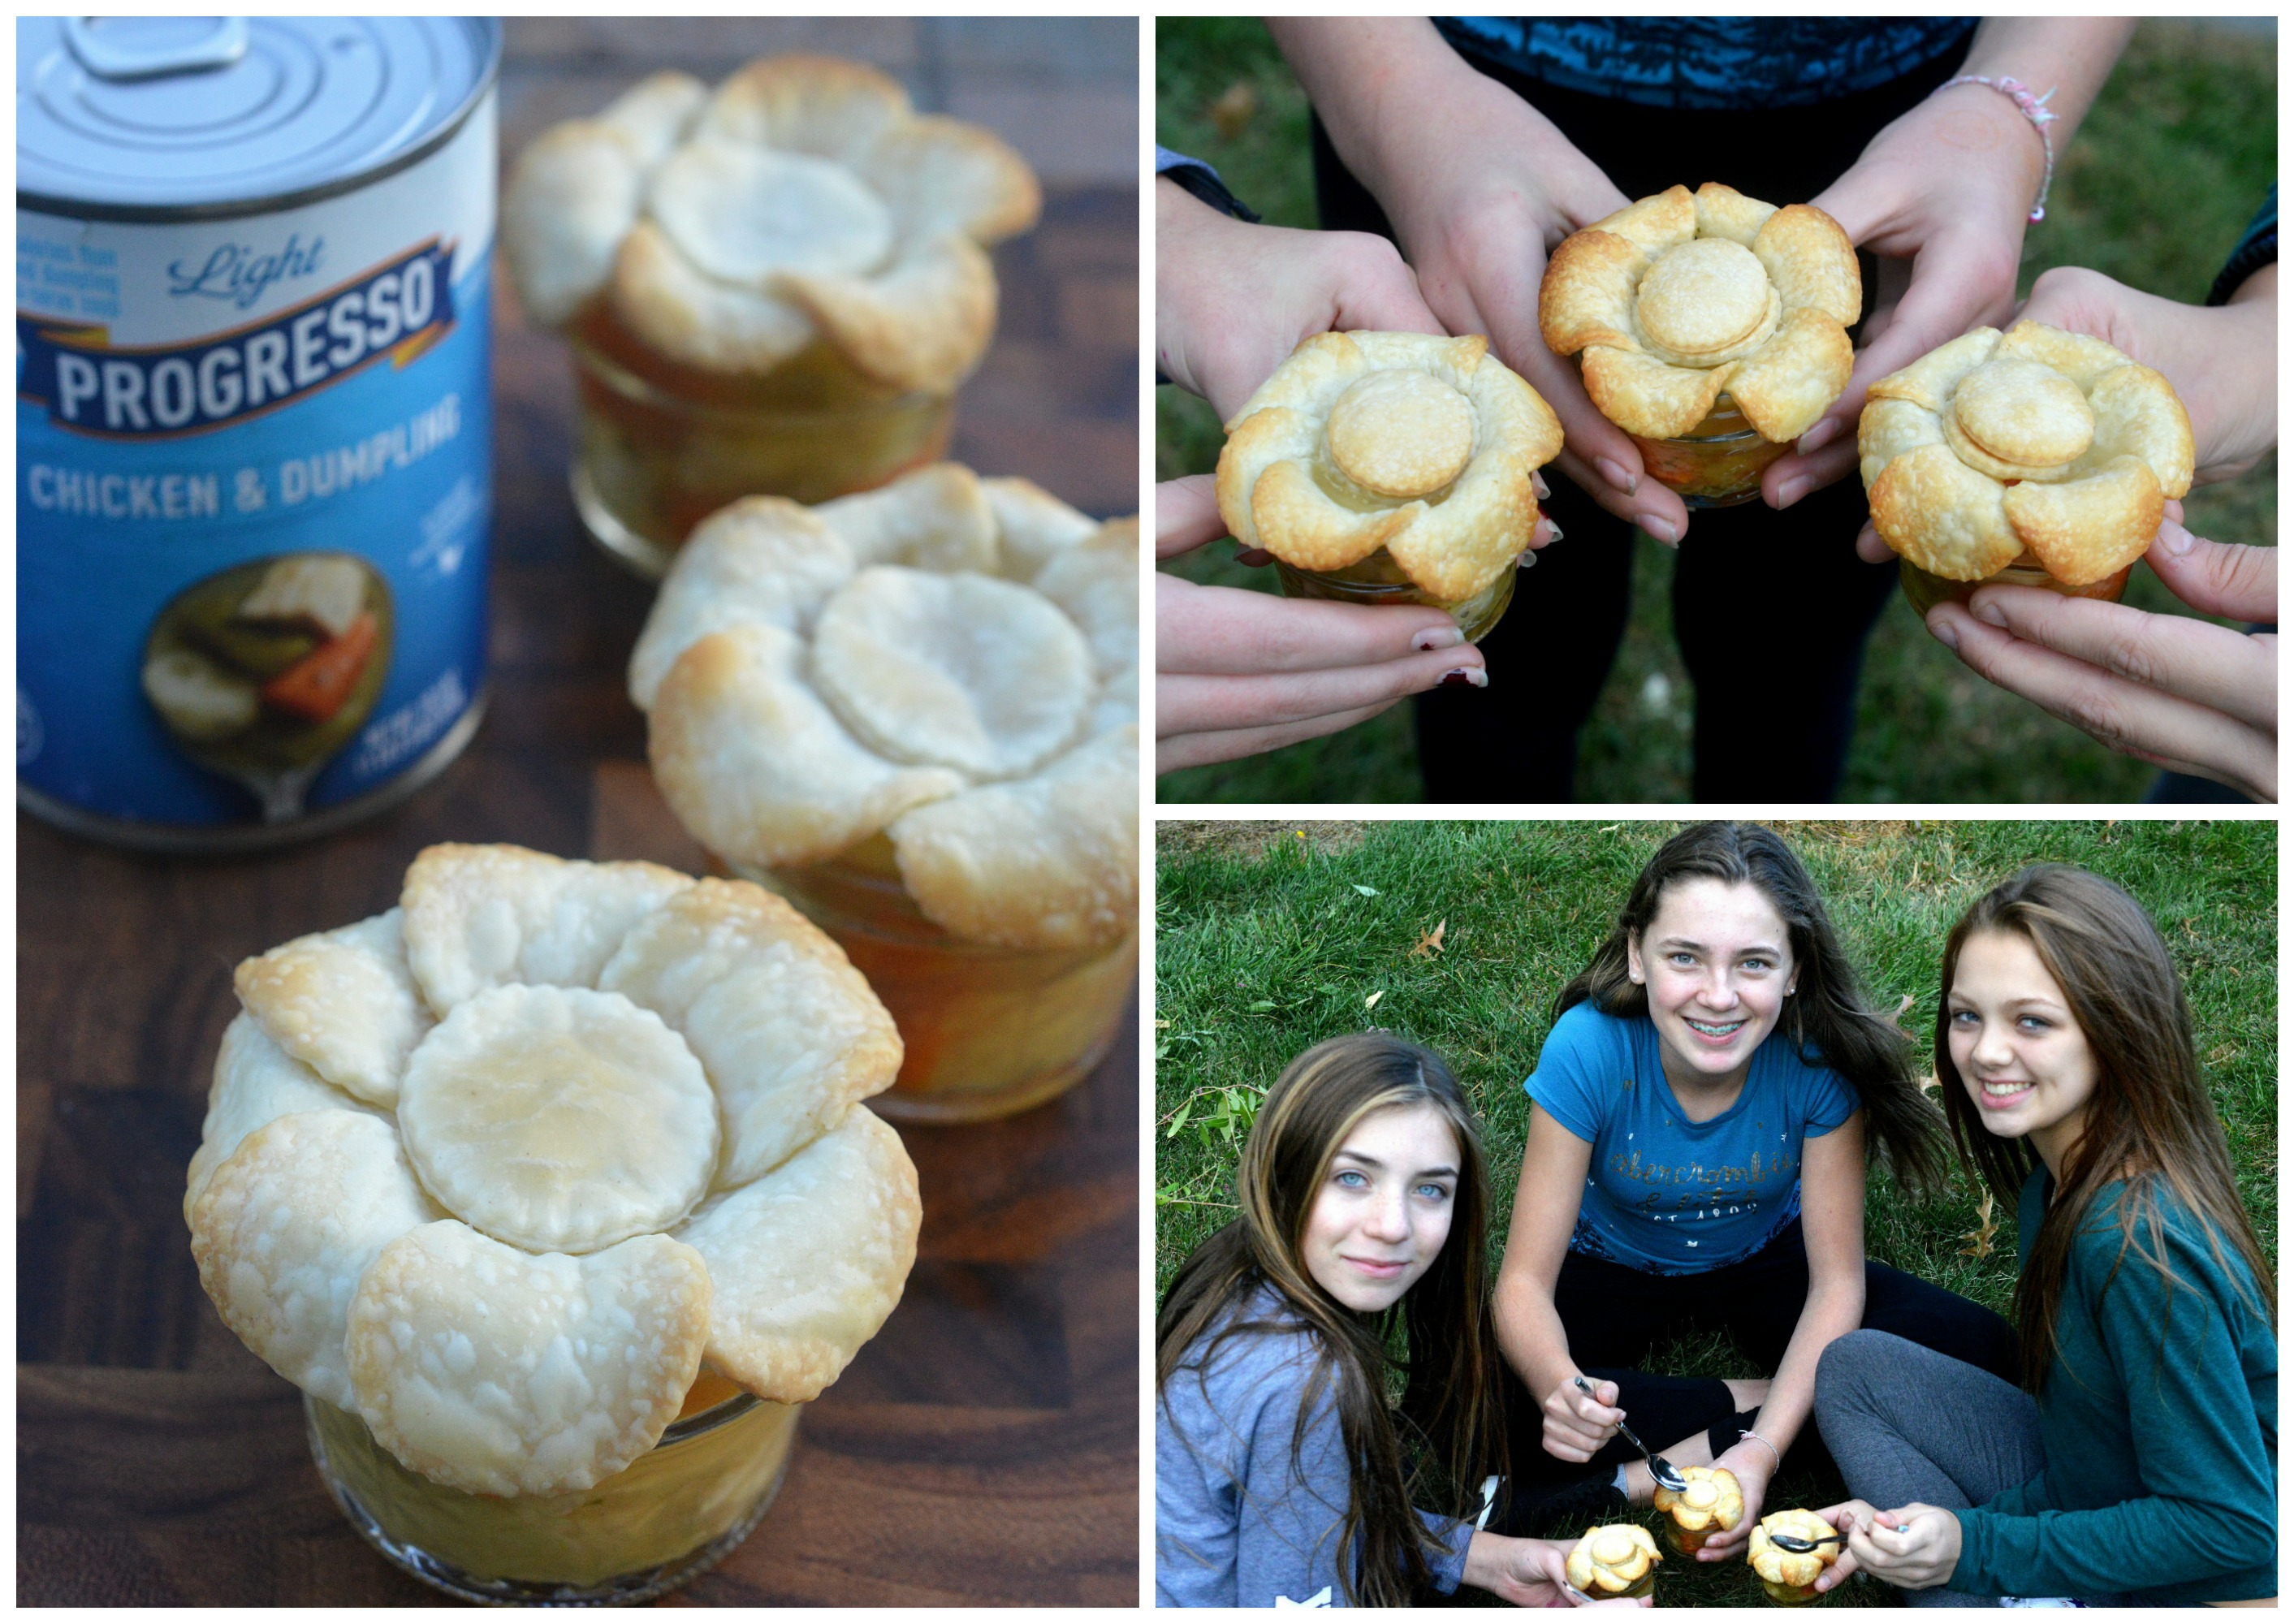 Mini Soup Jars are topped with pie crust that they dunk like a cracker. They are fun for the kids to make and eat!